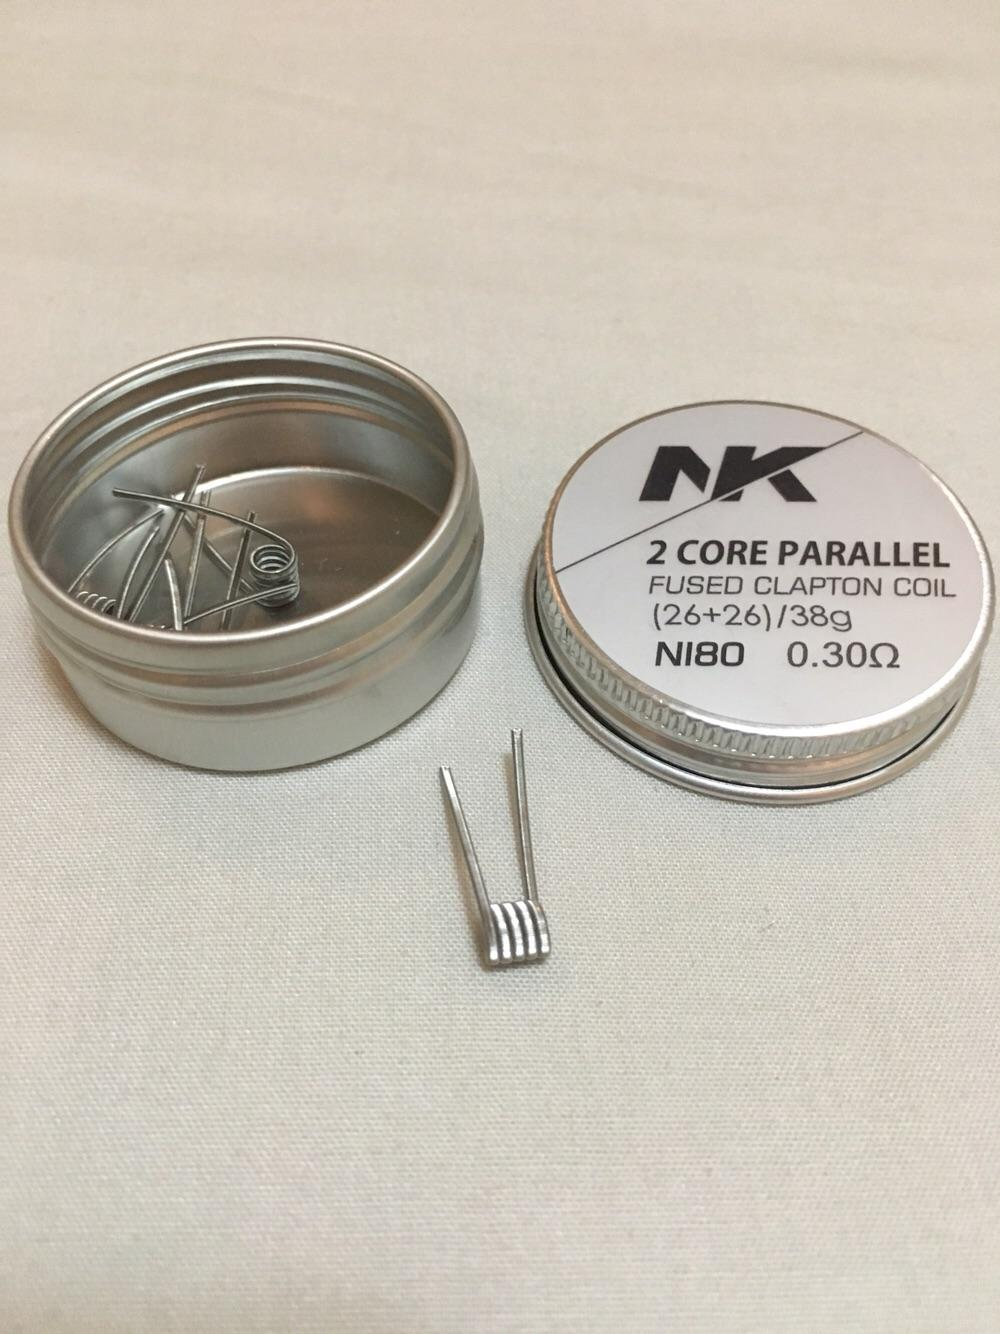 Sell dcwires fused clapton cheapest best quality | PH Store